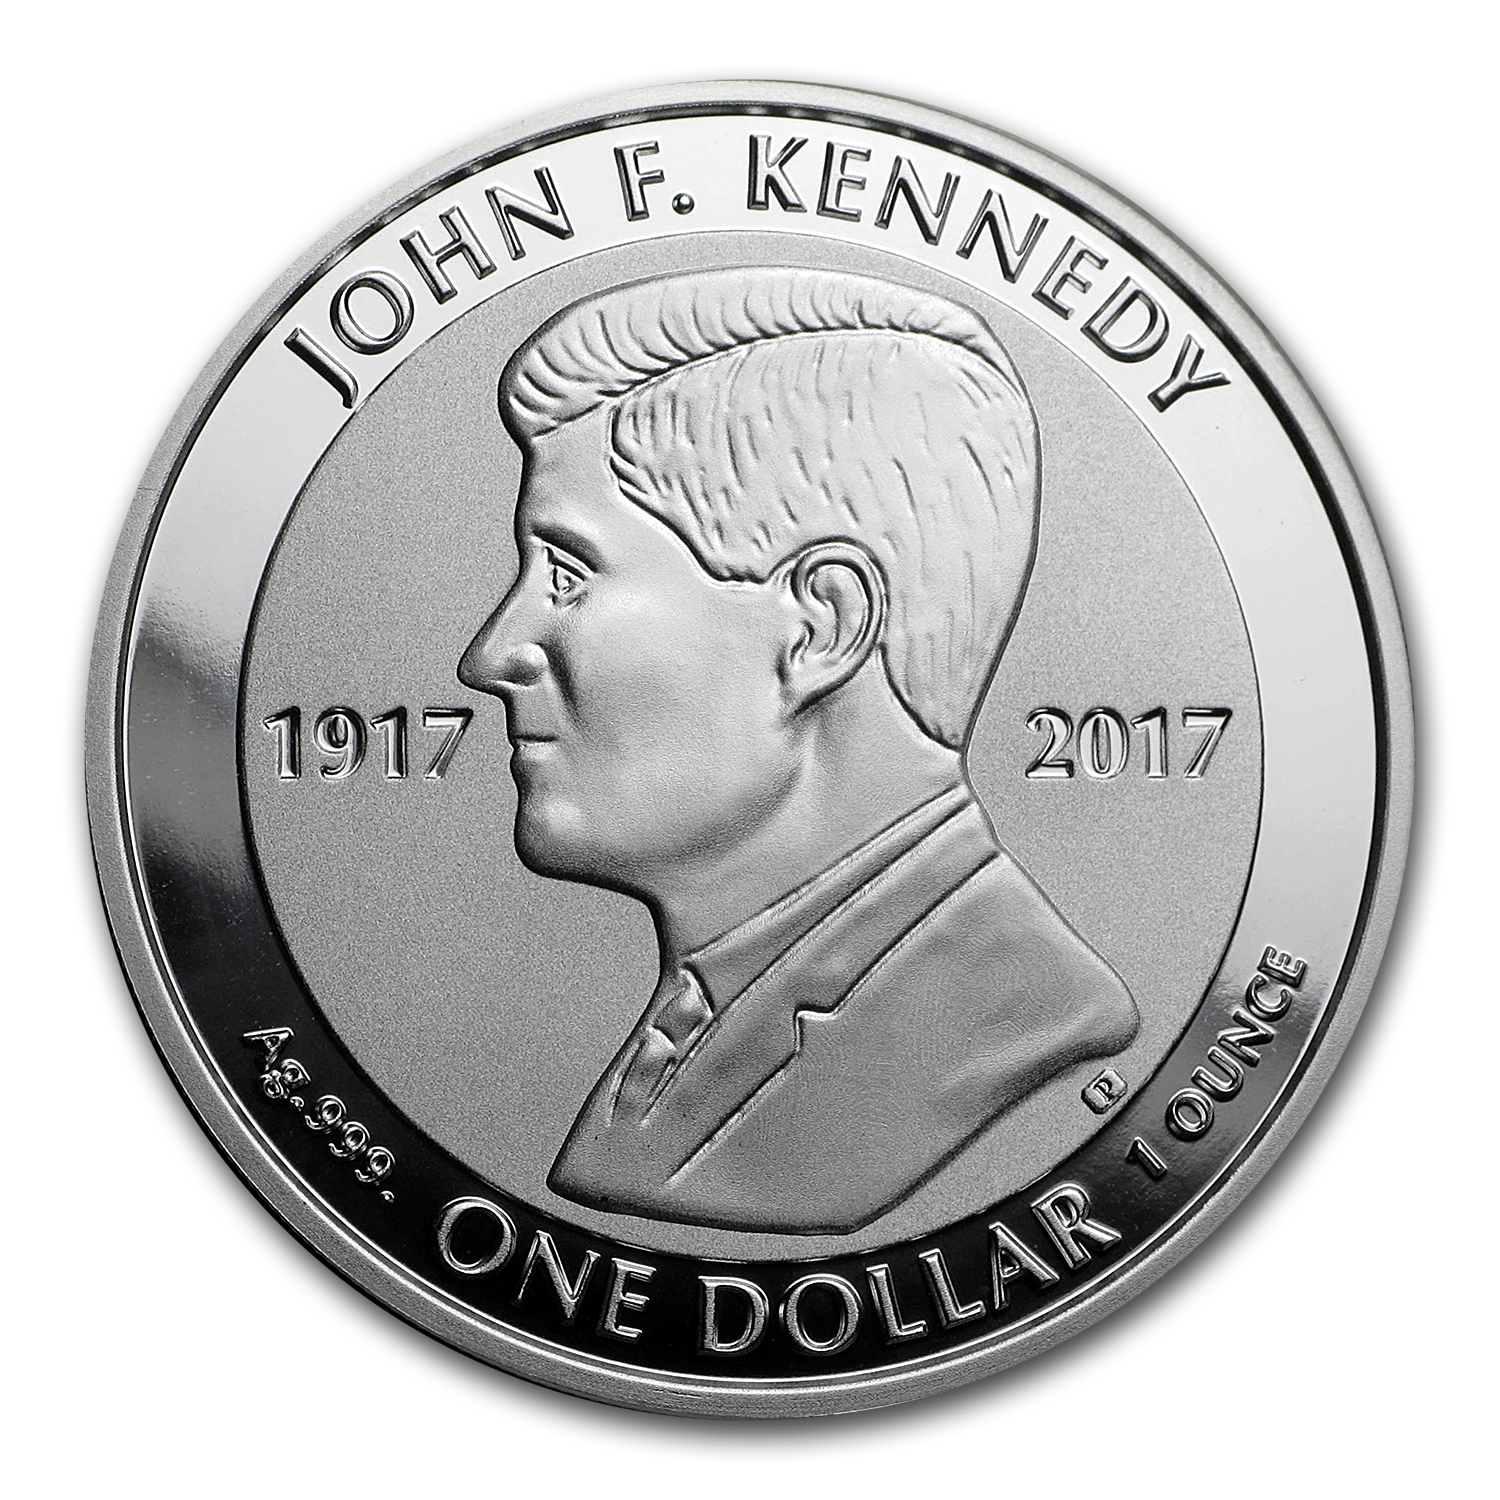 2017 British Virgin Islands 1 oz Silver John F. Kennedy Rev Proof